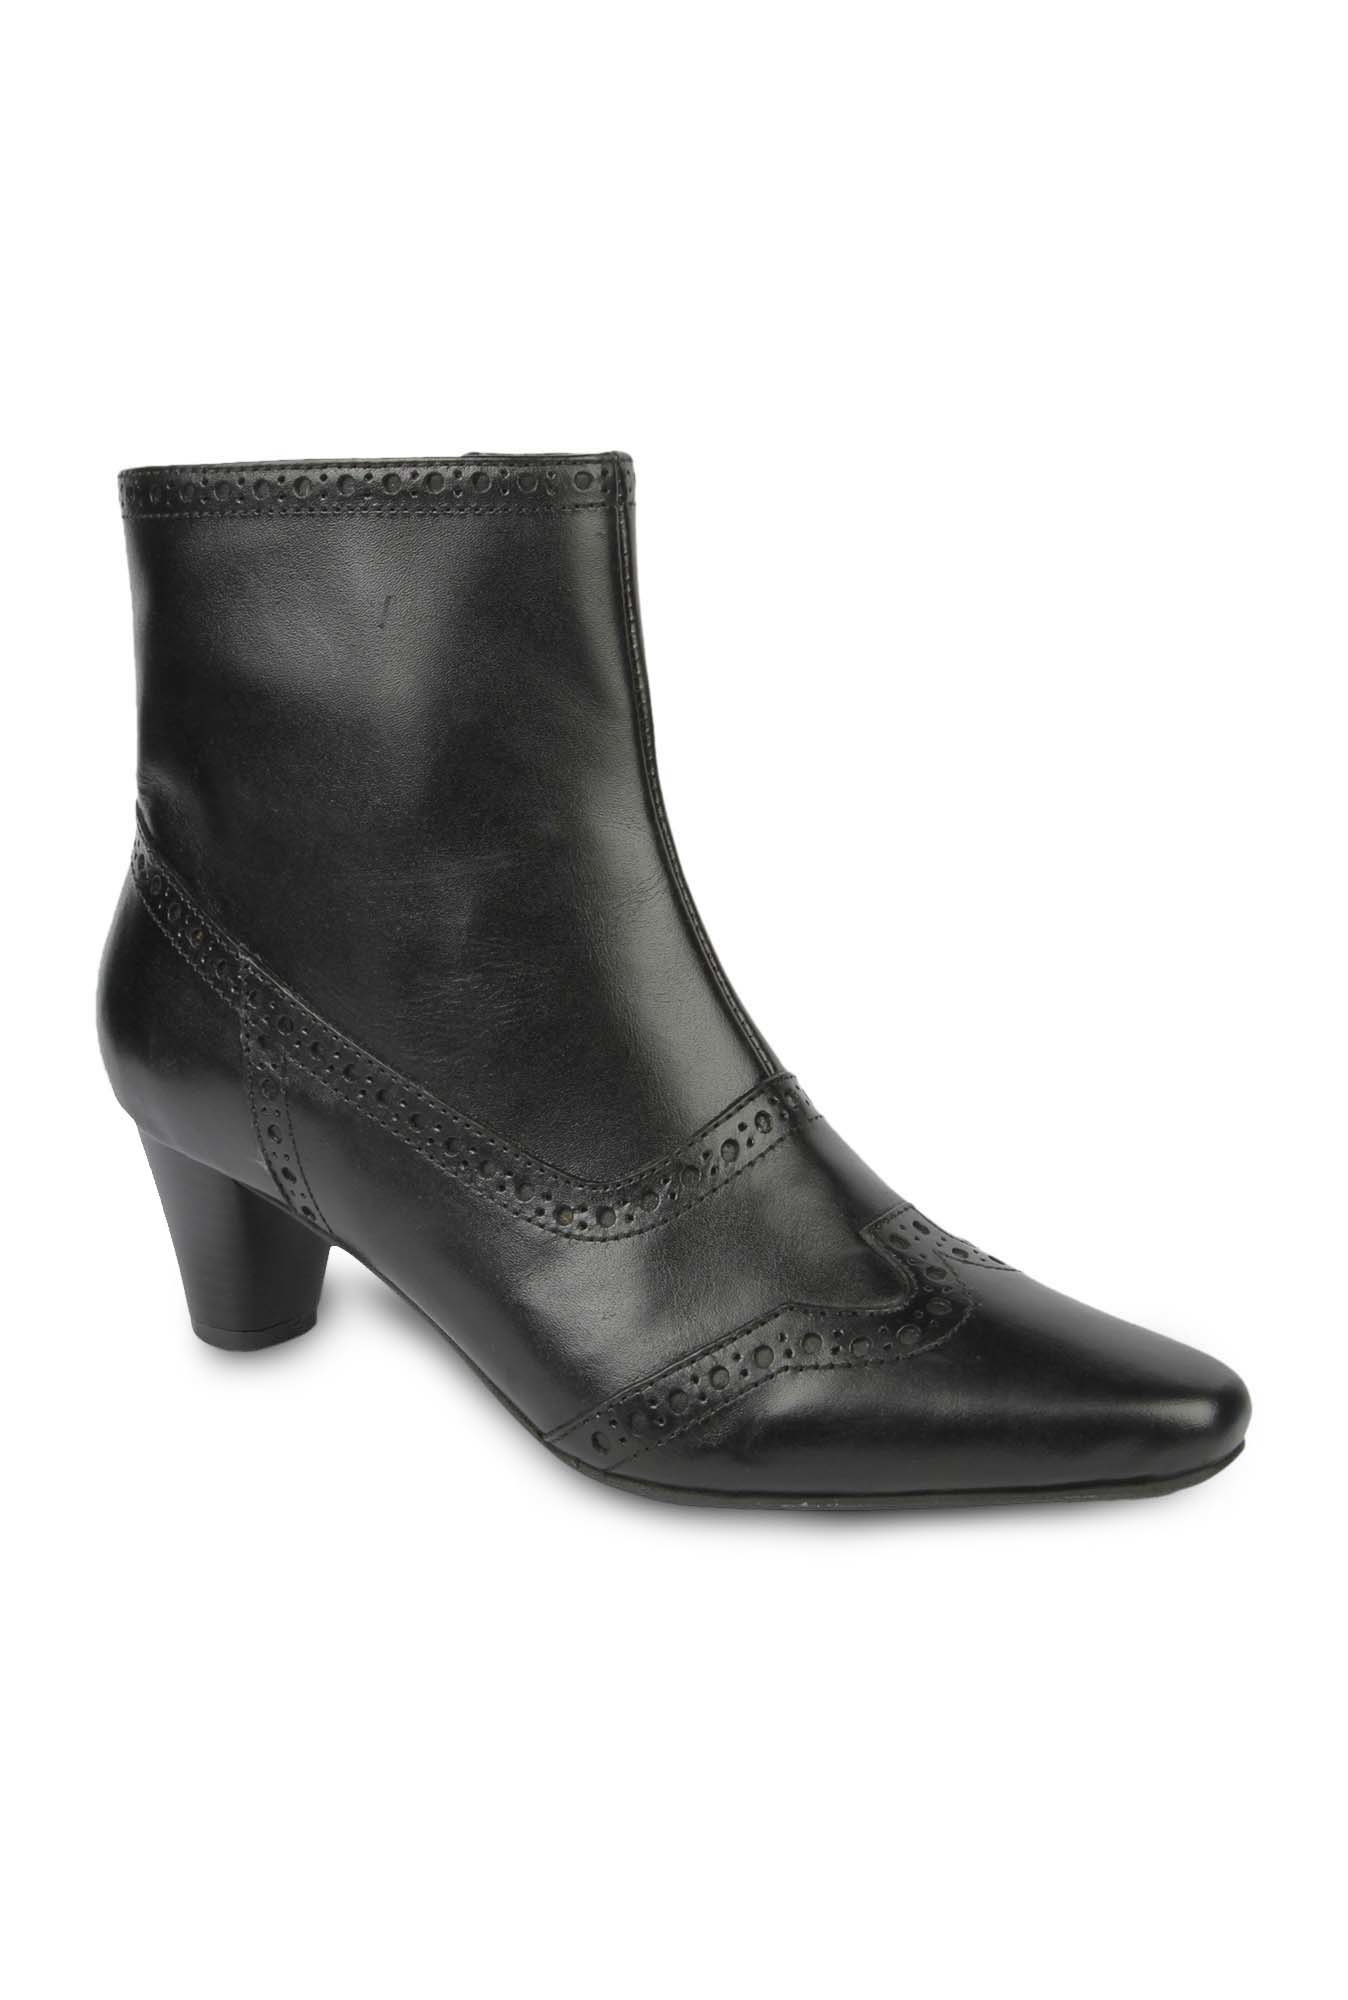 La Briza Black Block Heeled Booties